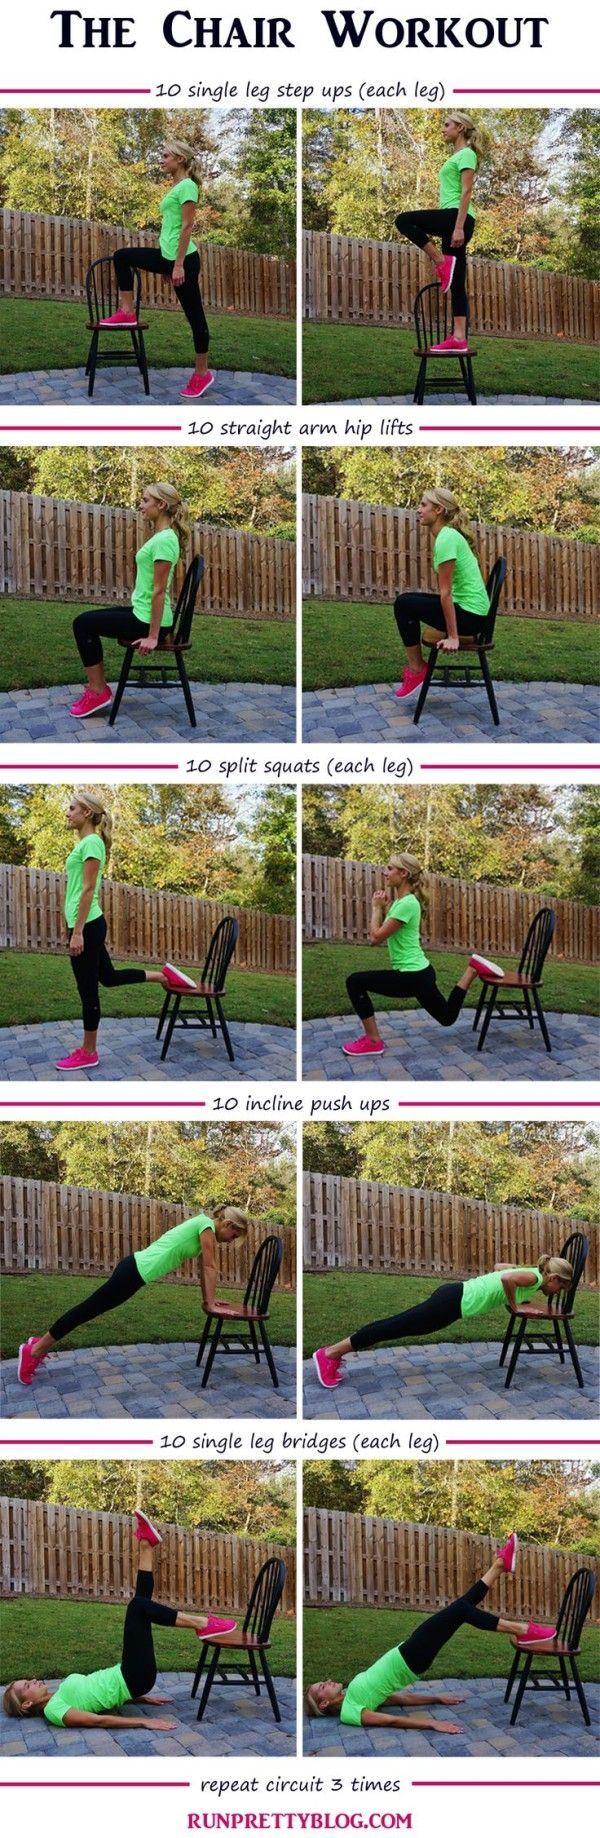 Cardio & Strength Workouts for the Home or Gym including the Chair Workout from Run Pretty Blog